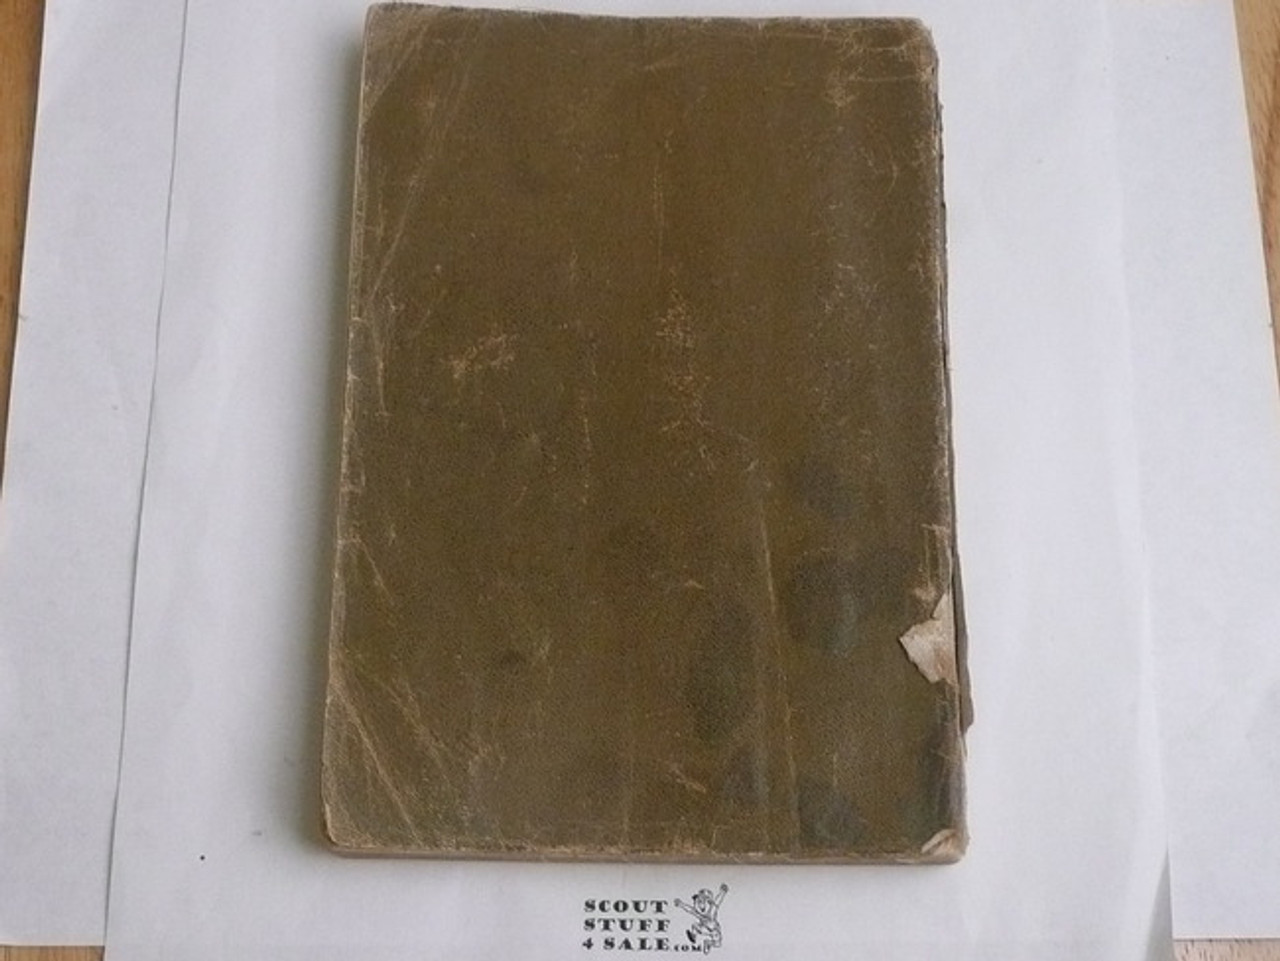 1911 Boy Scout Handbook, First Edition, PROOF PRINTING, 320 Pages, Some Cover and Spine Wear, RARE